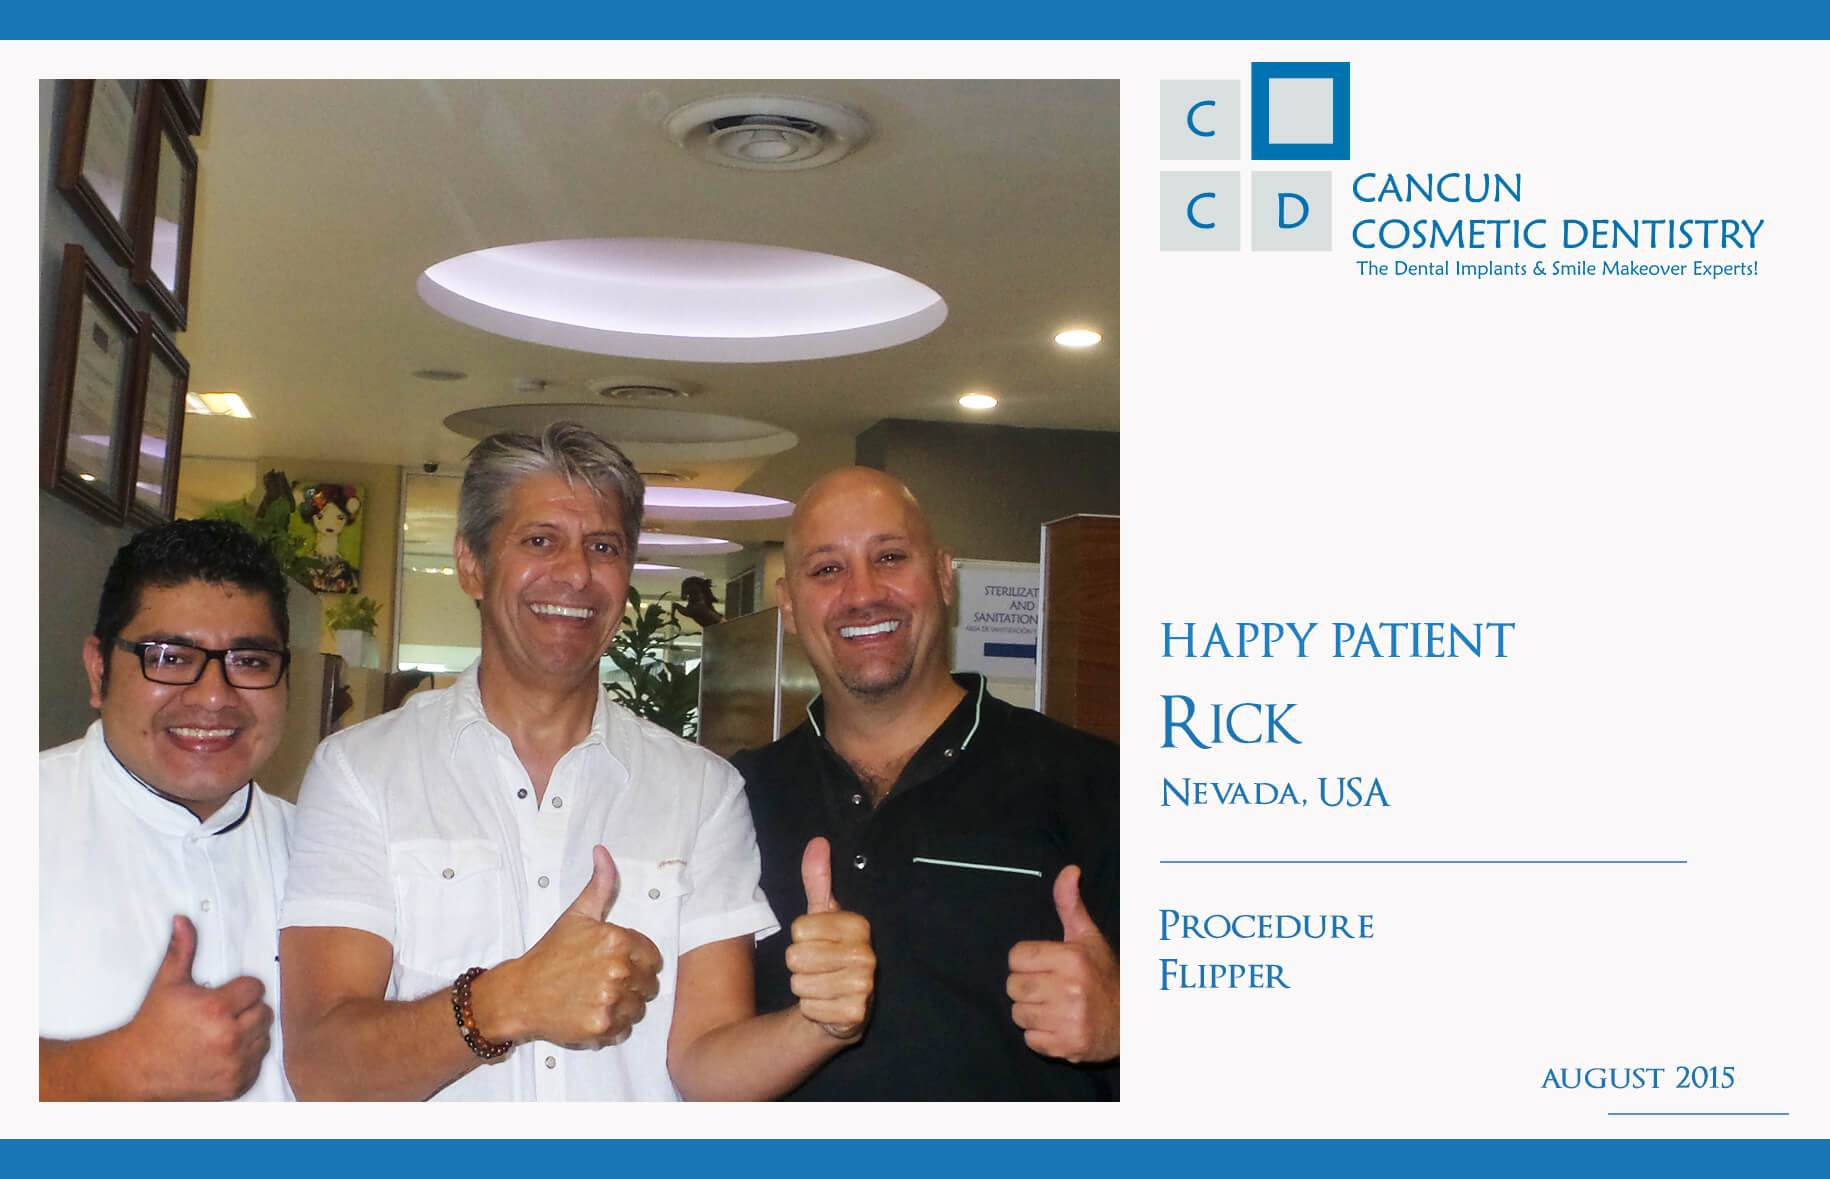 Cancun Cosmetic Dentistry review bone graft dental implants flipper